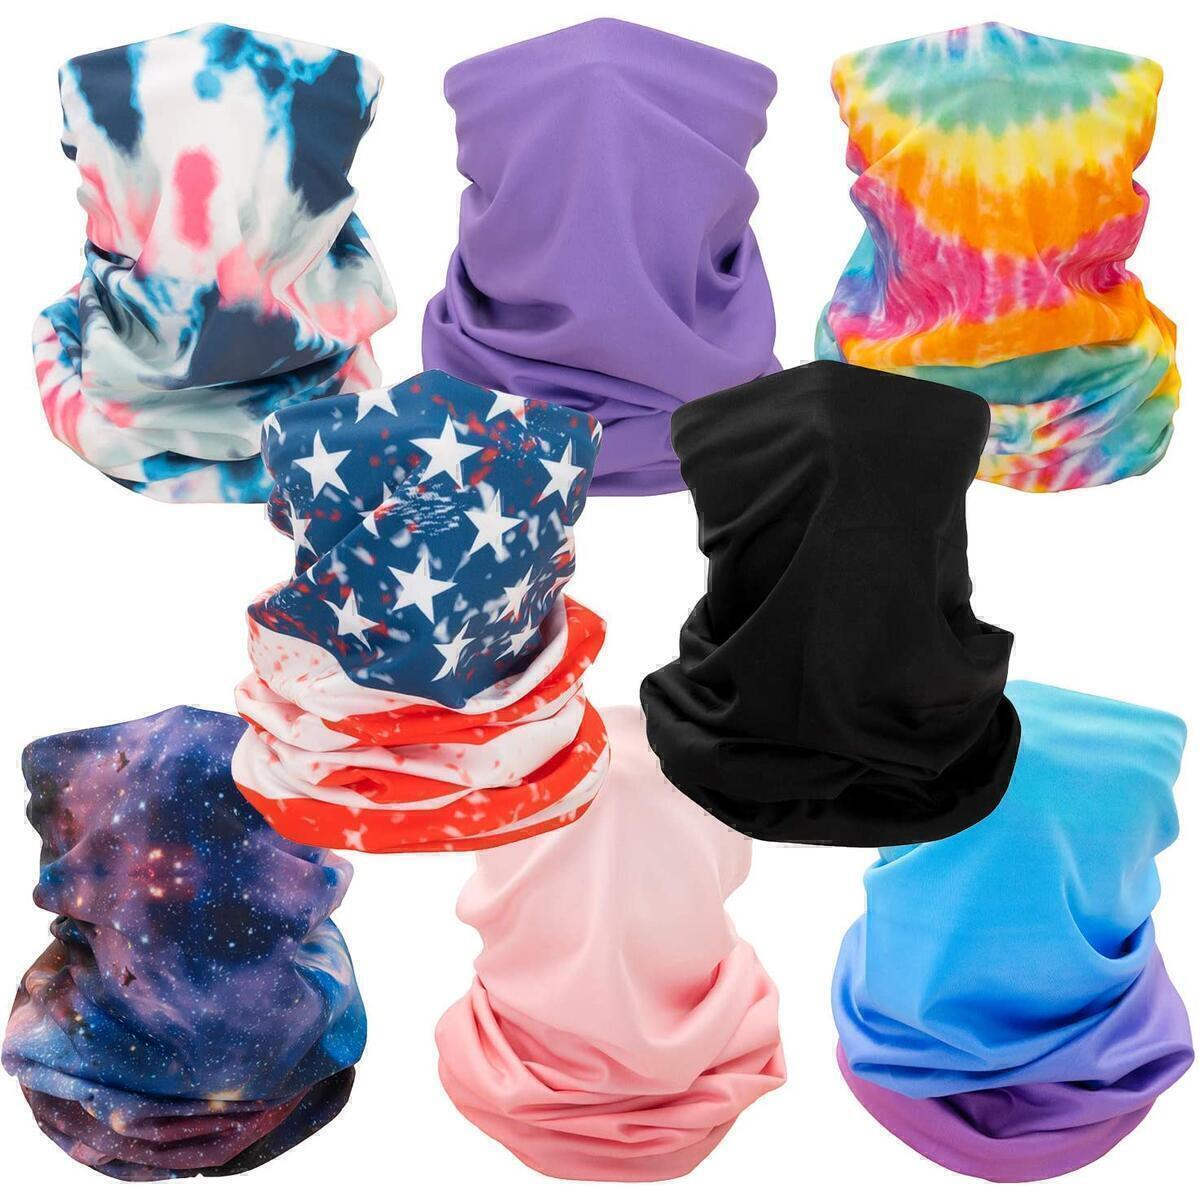 CK Formula Neck Gaiter Mask - Multifunctional and Breathable Cooling Face Bandana with Seamless Microfiber and UV Protection for Outdoor Use Reusable/Machine Washable (Pack of 8)